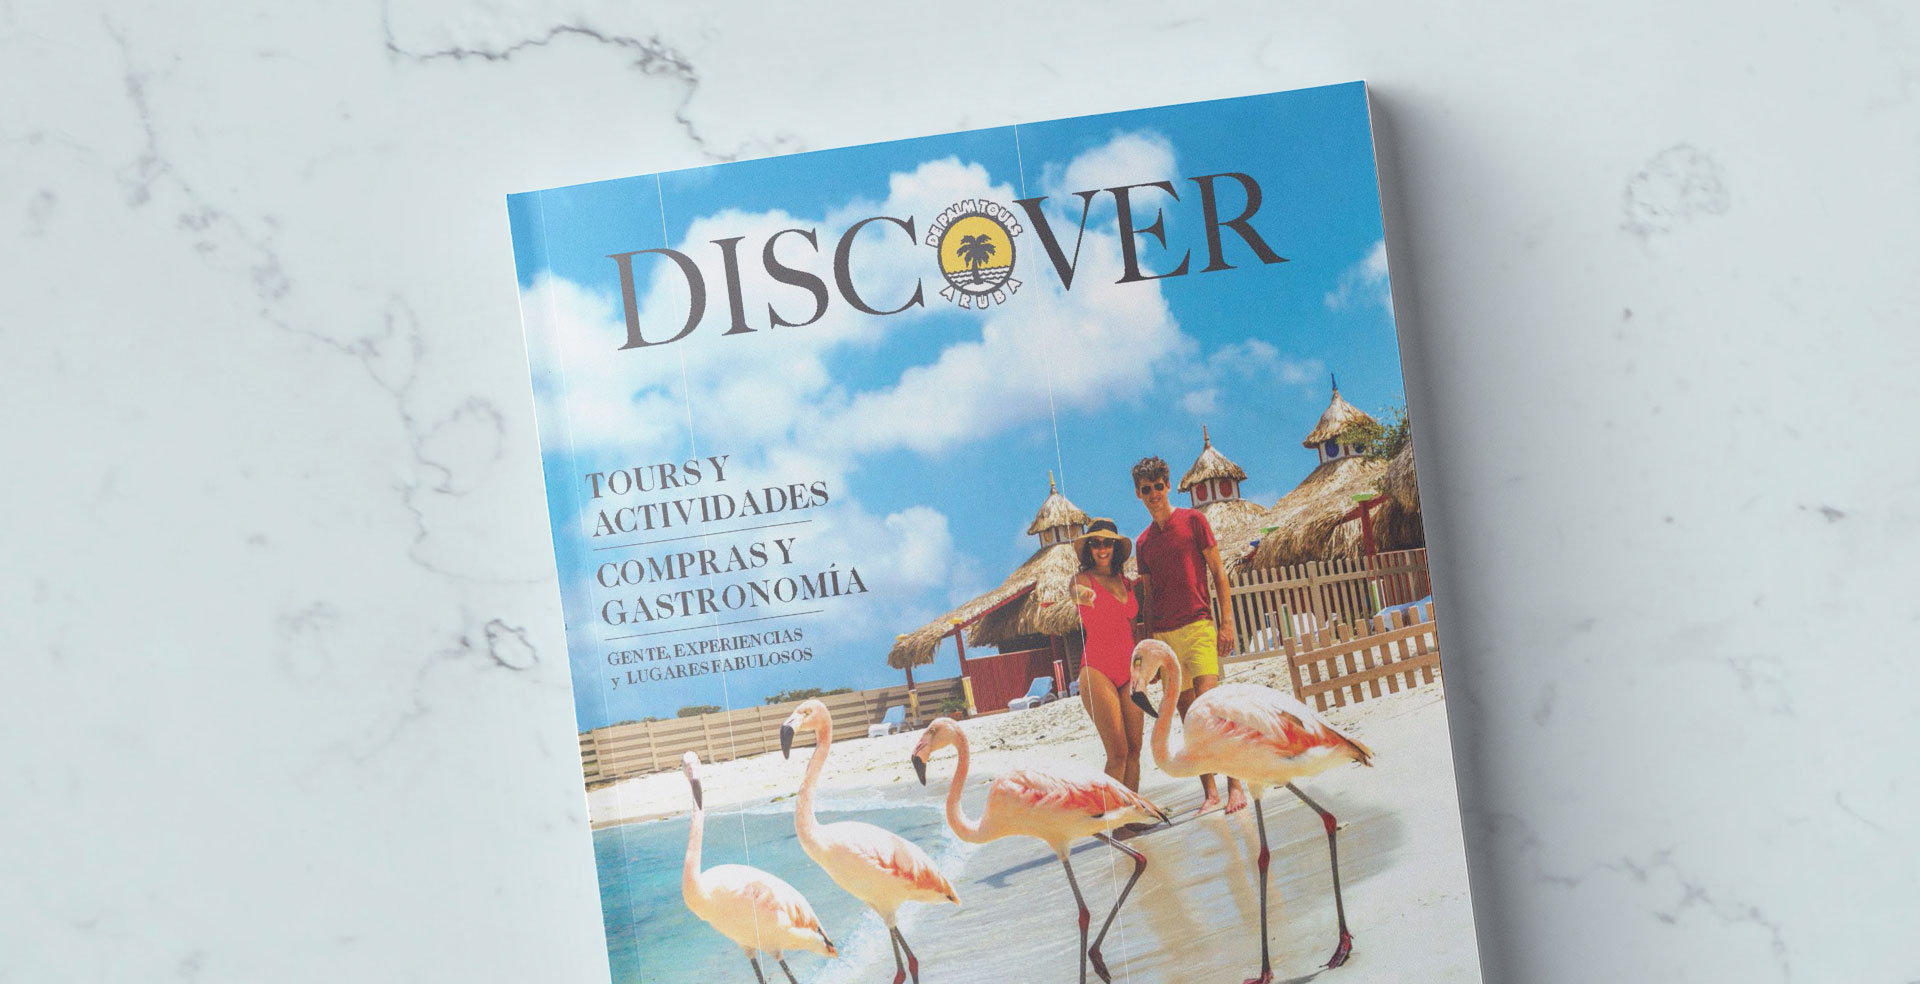 Discover-Arubas-Tours-and-Activities-Guide